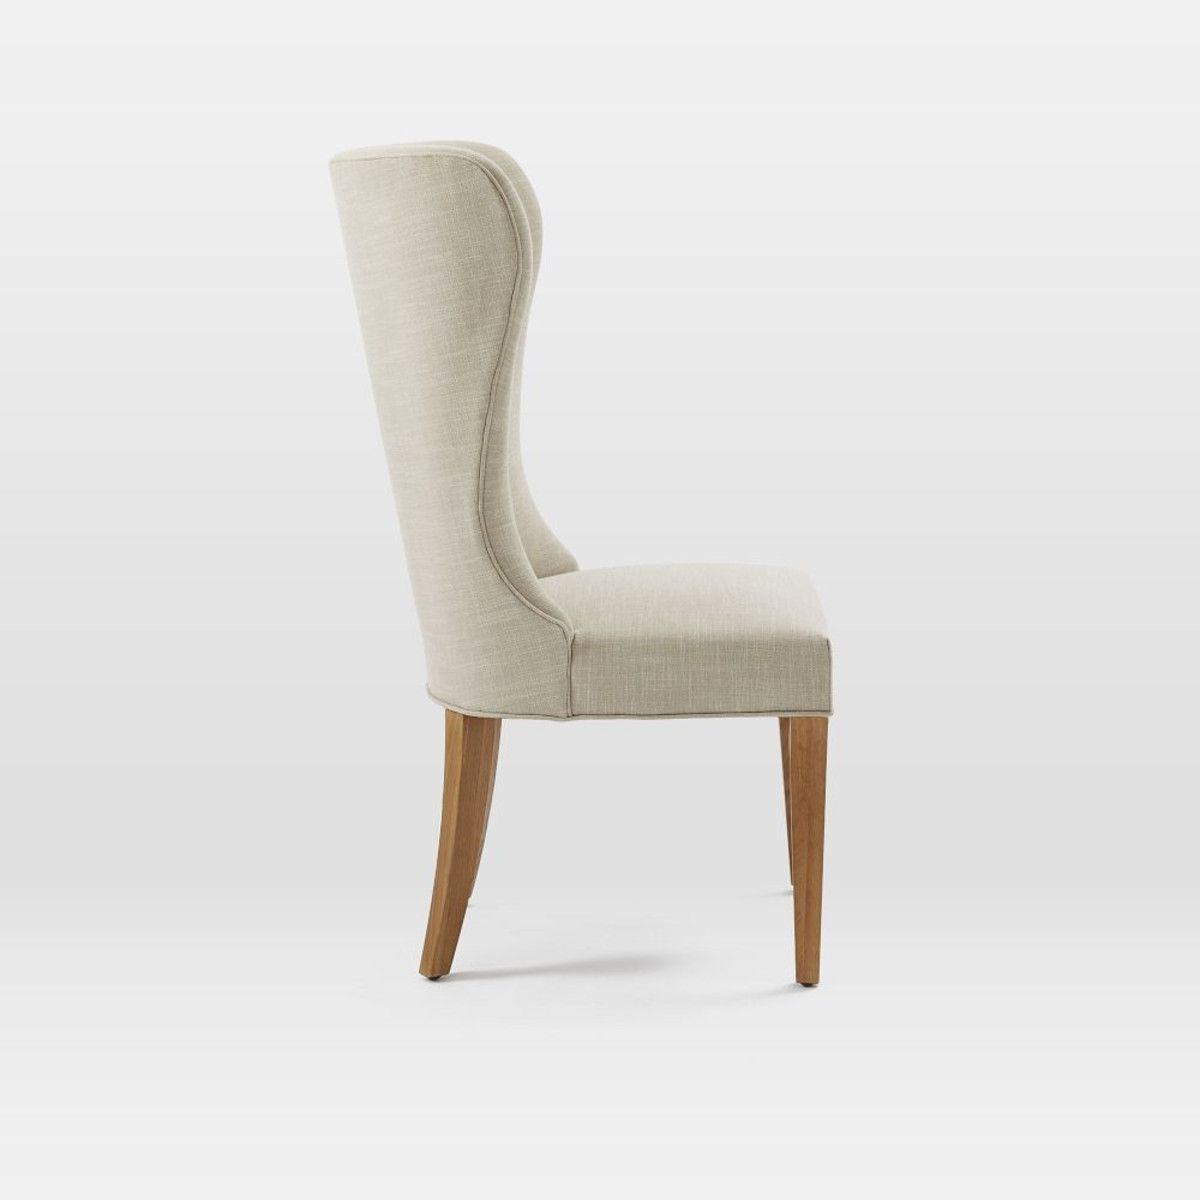 Albie Wing Dining Chair Dining Chairs Chair Modern Furniture